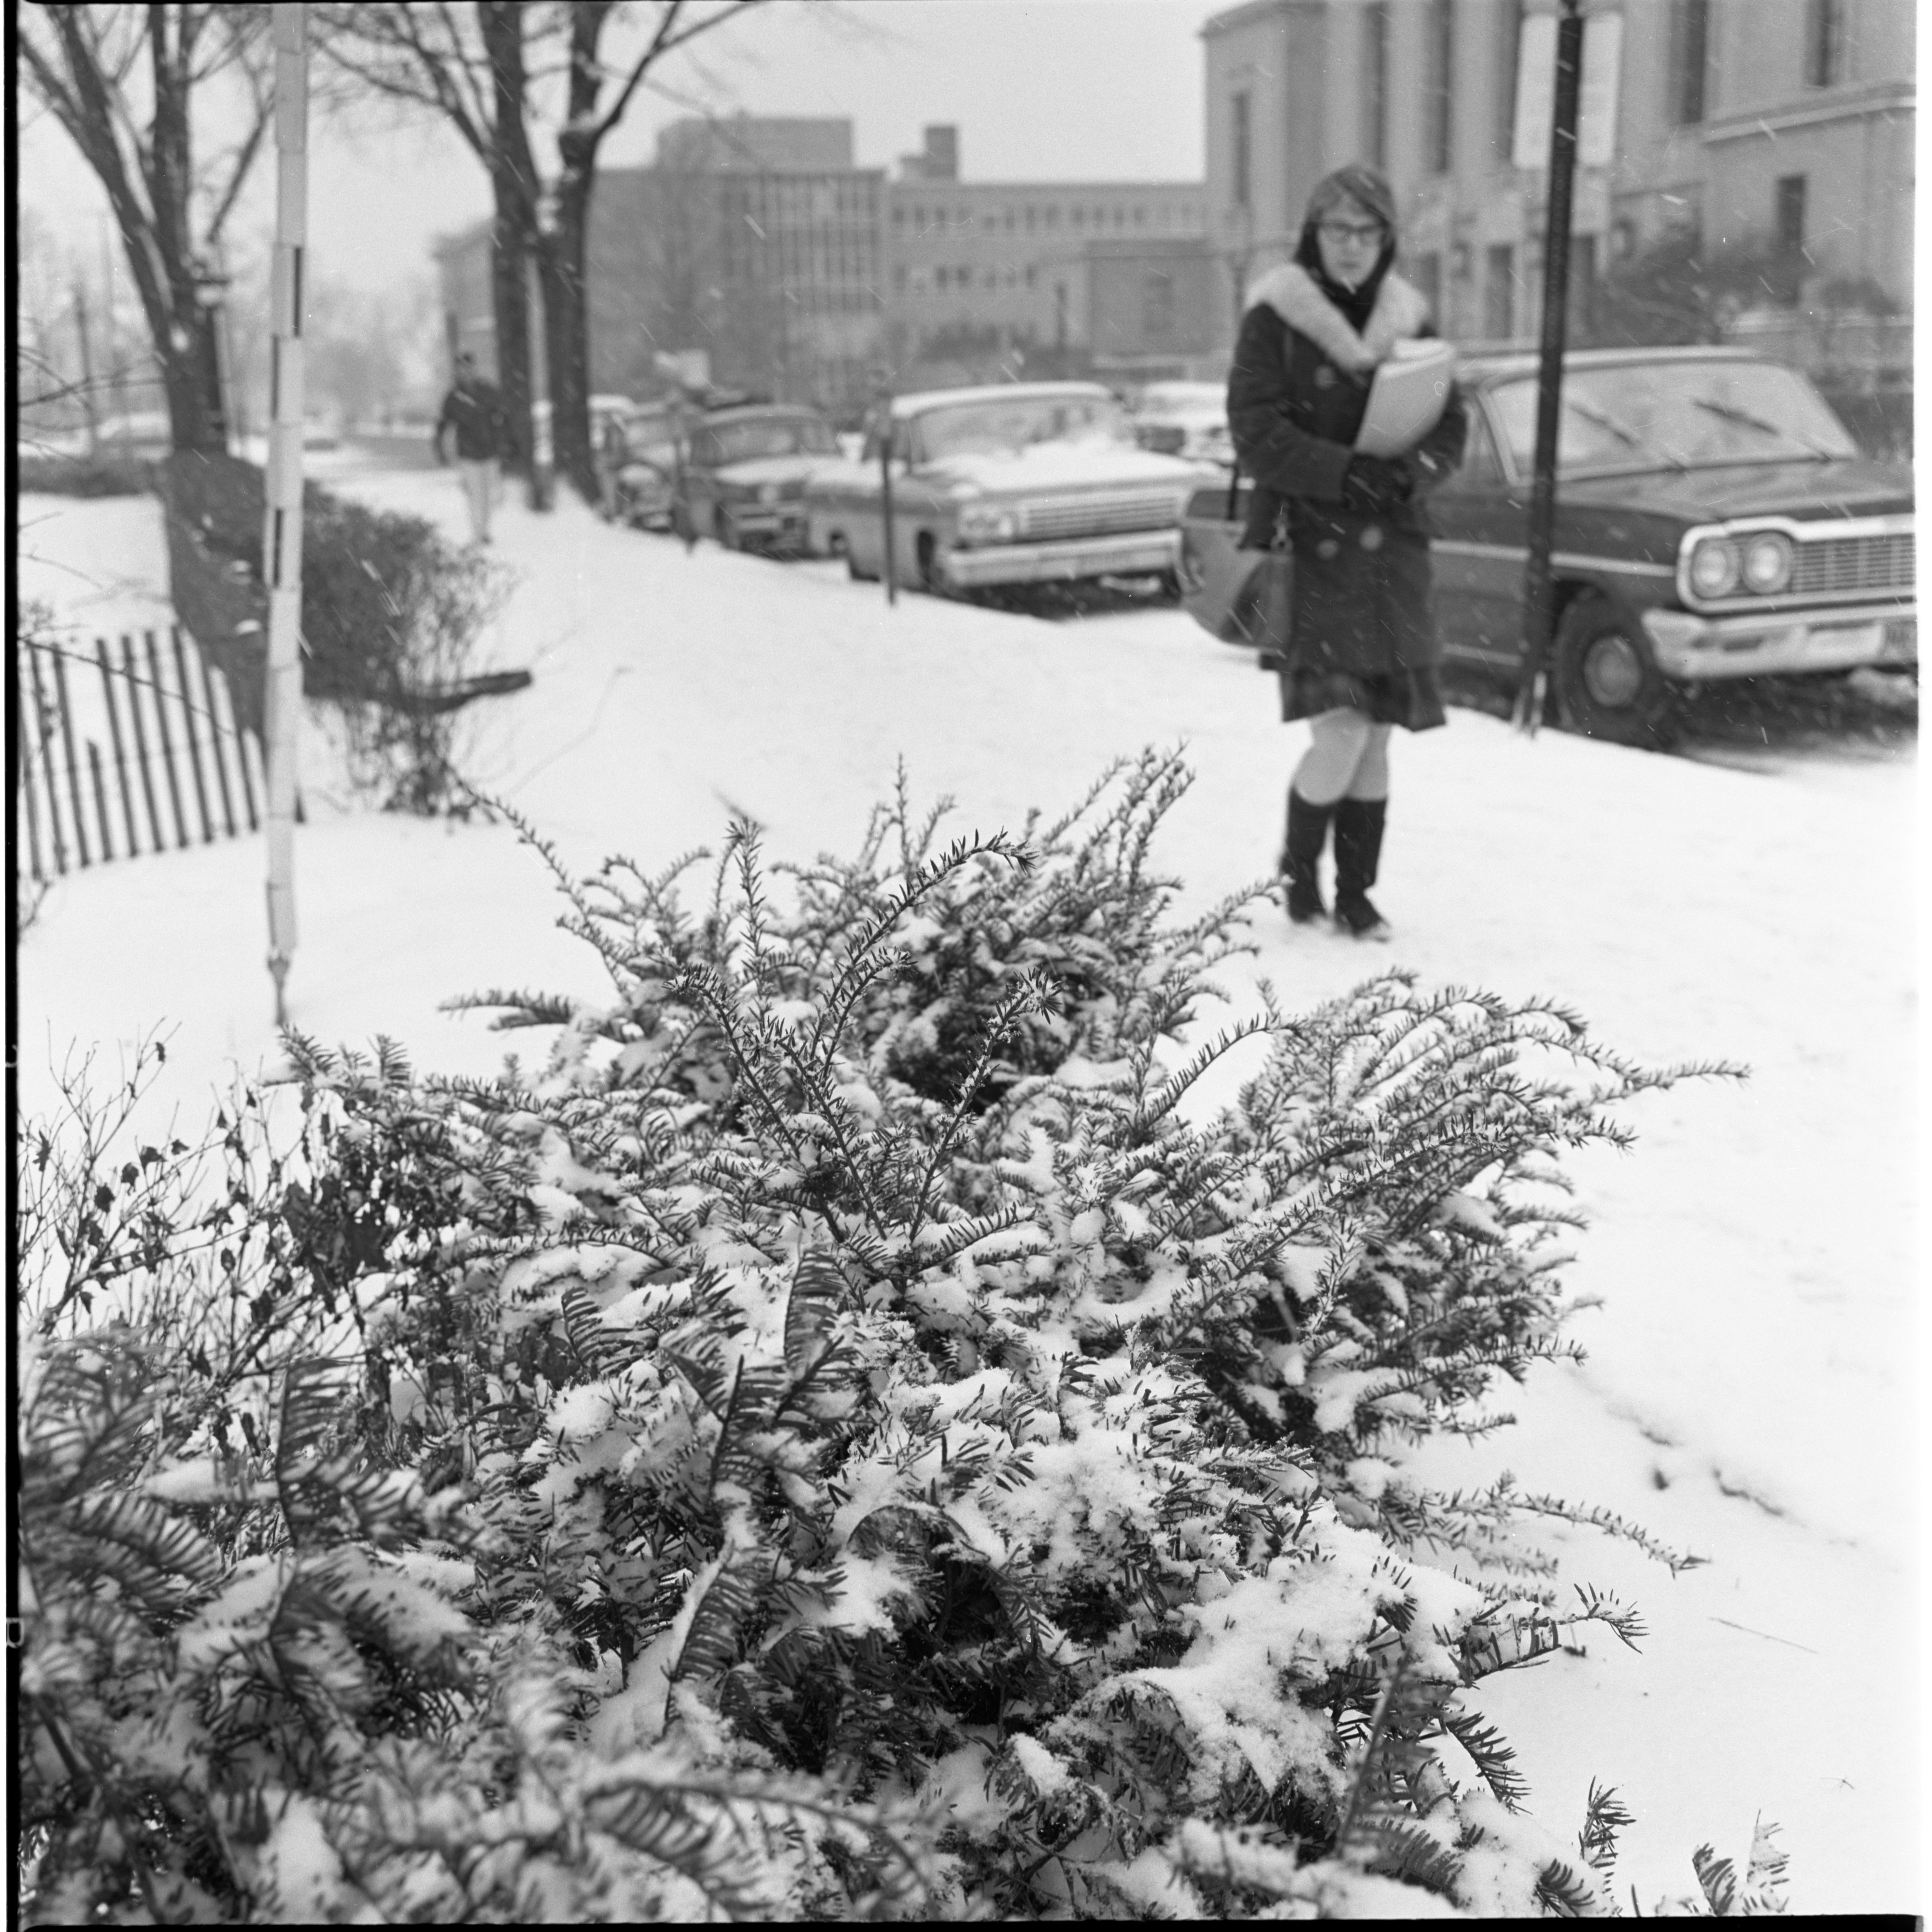 Snowfall On The University of Michigan Central Campus, January 1966 image